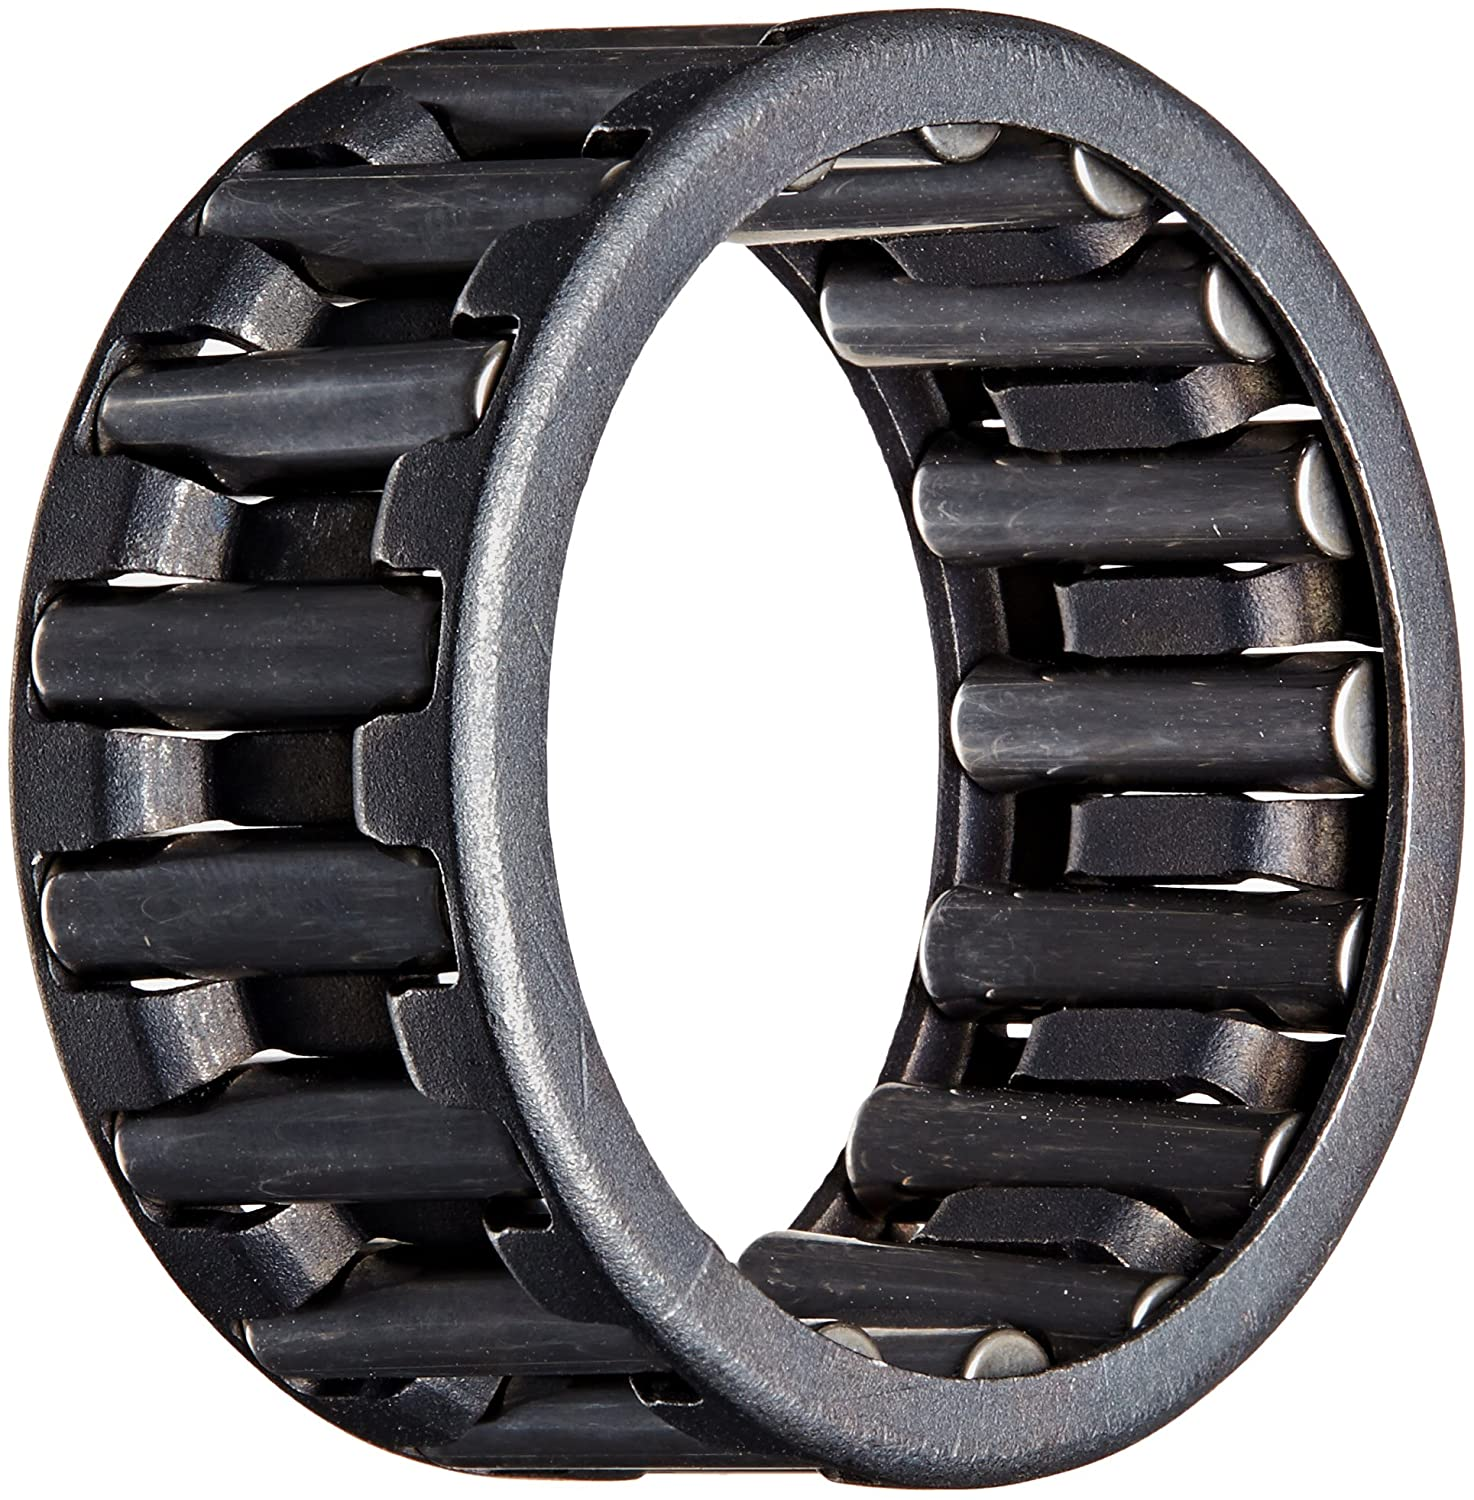 PESARO K 23X35X16 Roller Bearing Metric 16mm Width 23mm ID 35mm OD Cage and Roller Ford 6157560 Open End Single Row